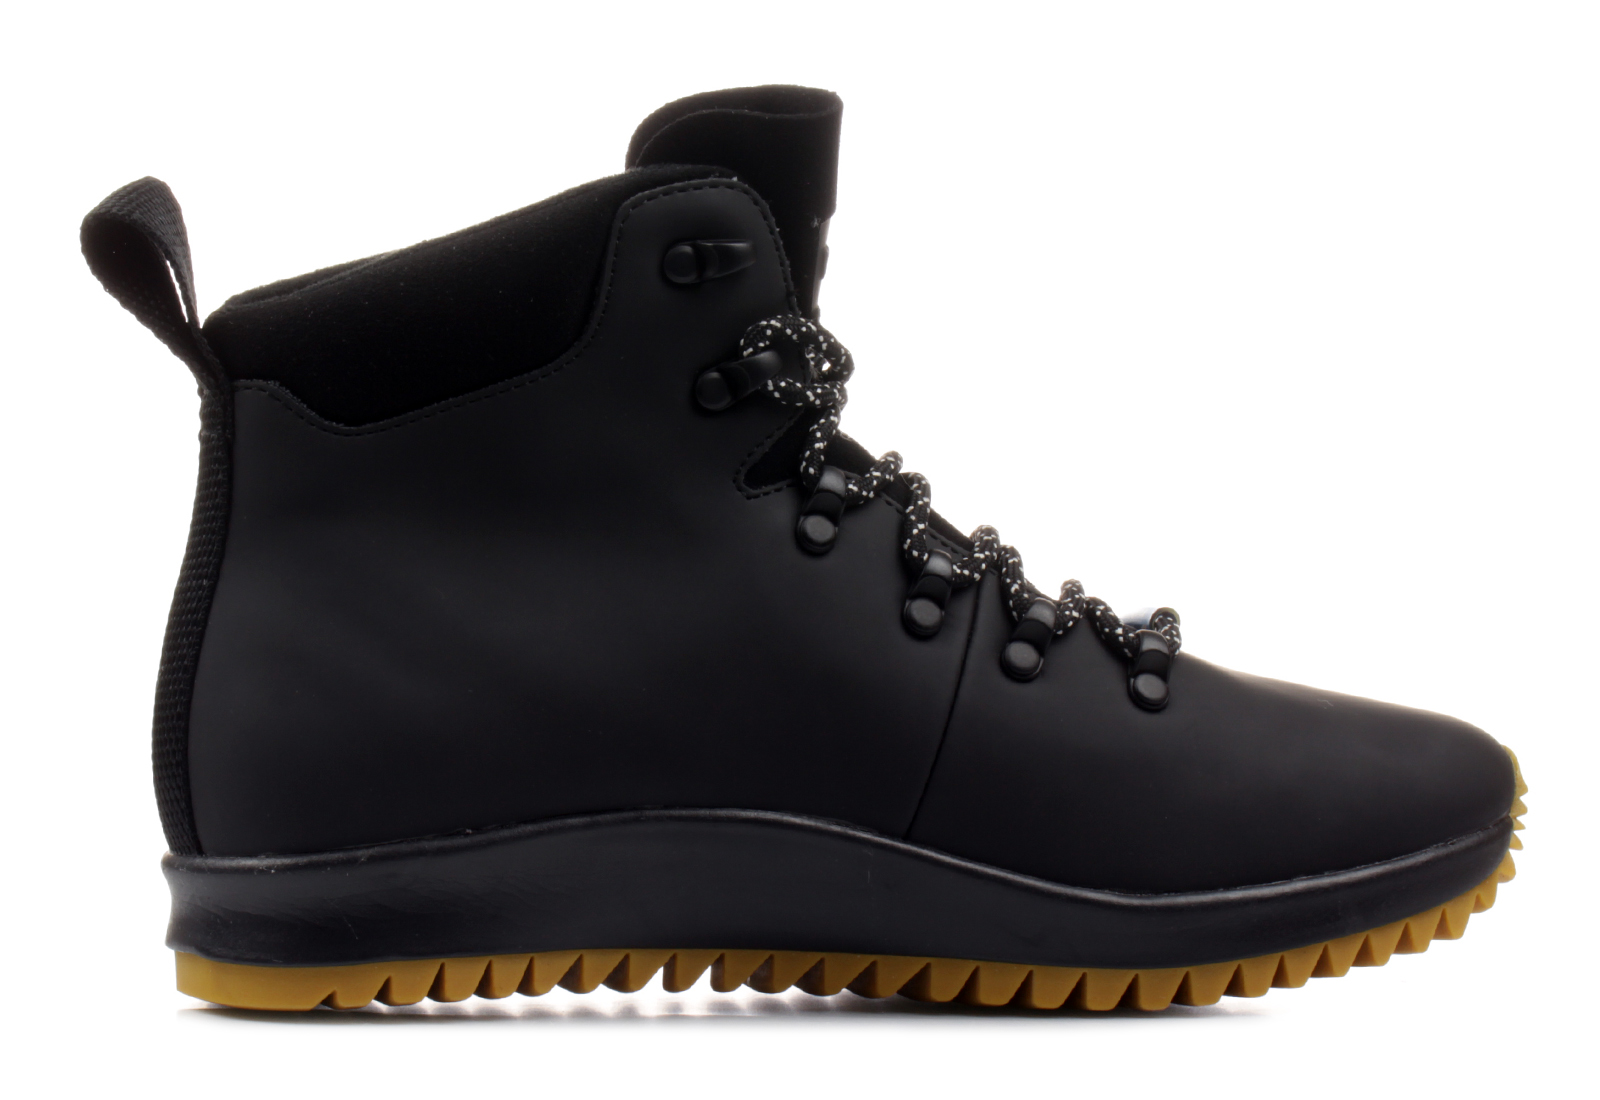 fbbb1f64c028 Native Boots - Ap Apex Ct - 41103640-1015 - Online shop for sneakers ...